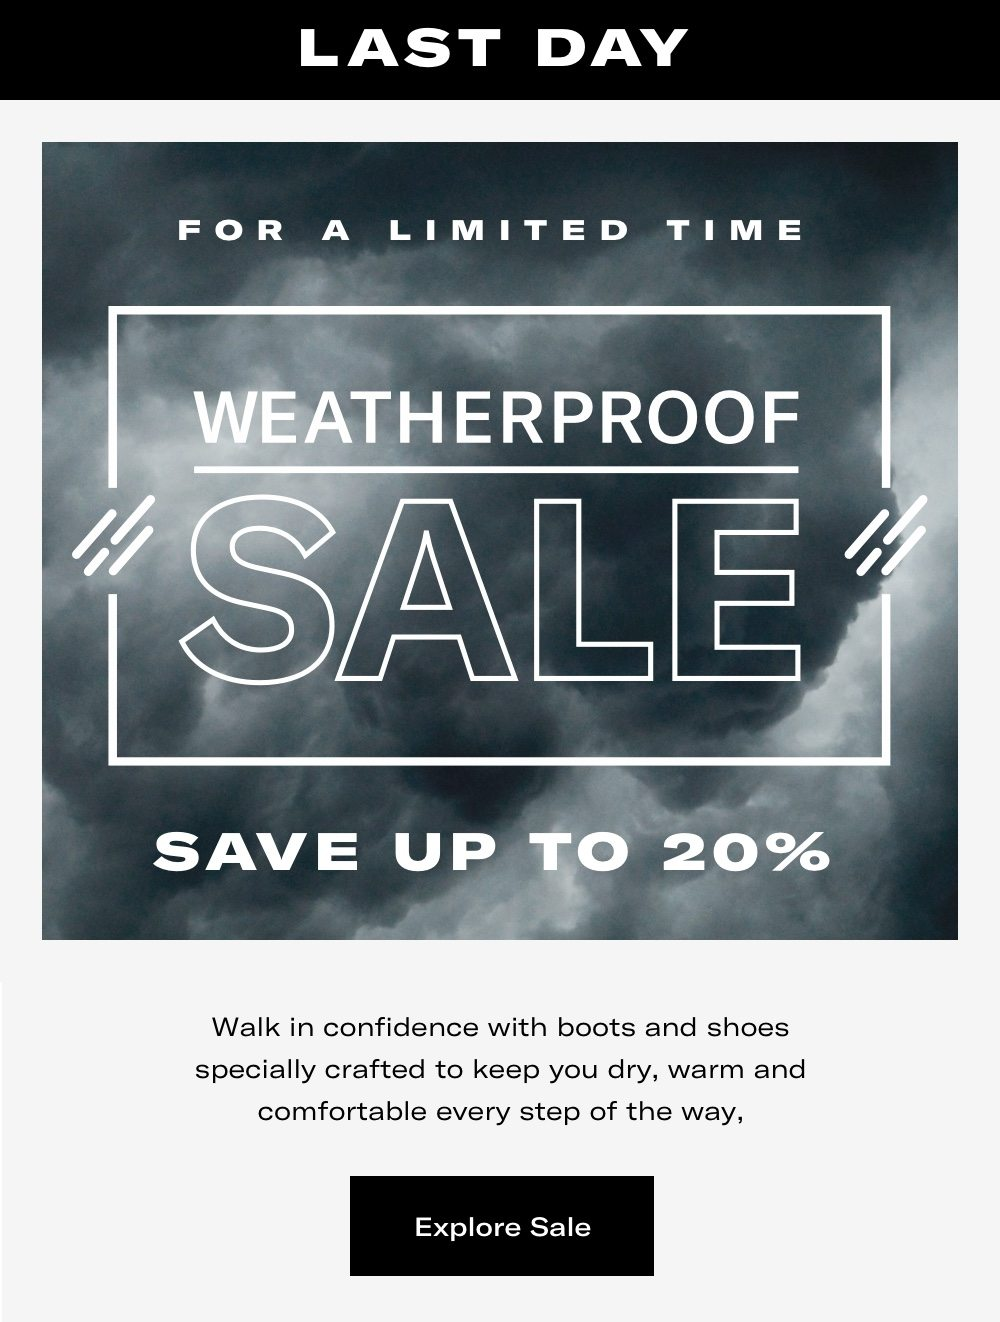 Last Day! - Weatherproof Sale - Save Up To 20%